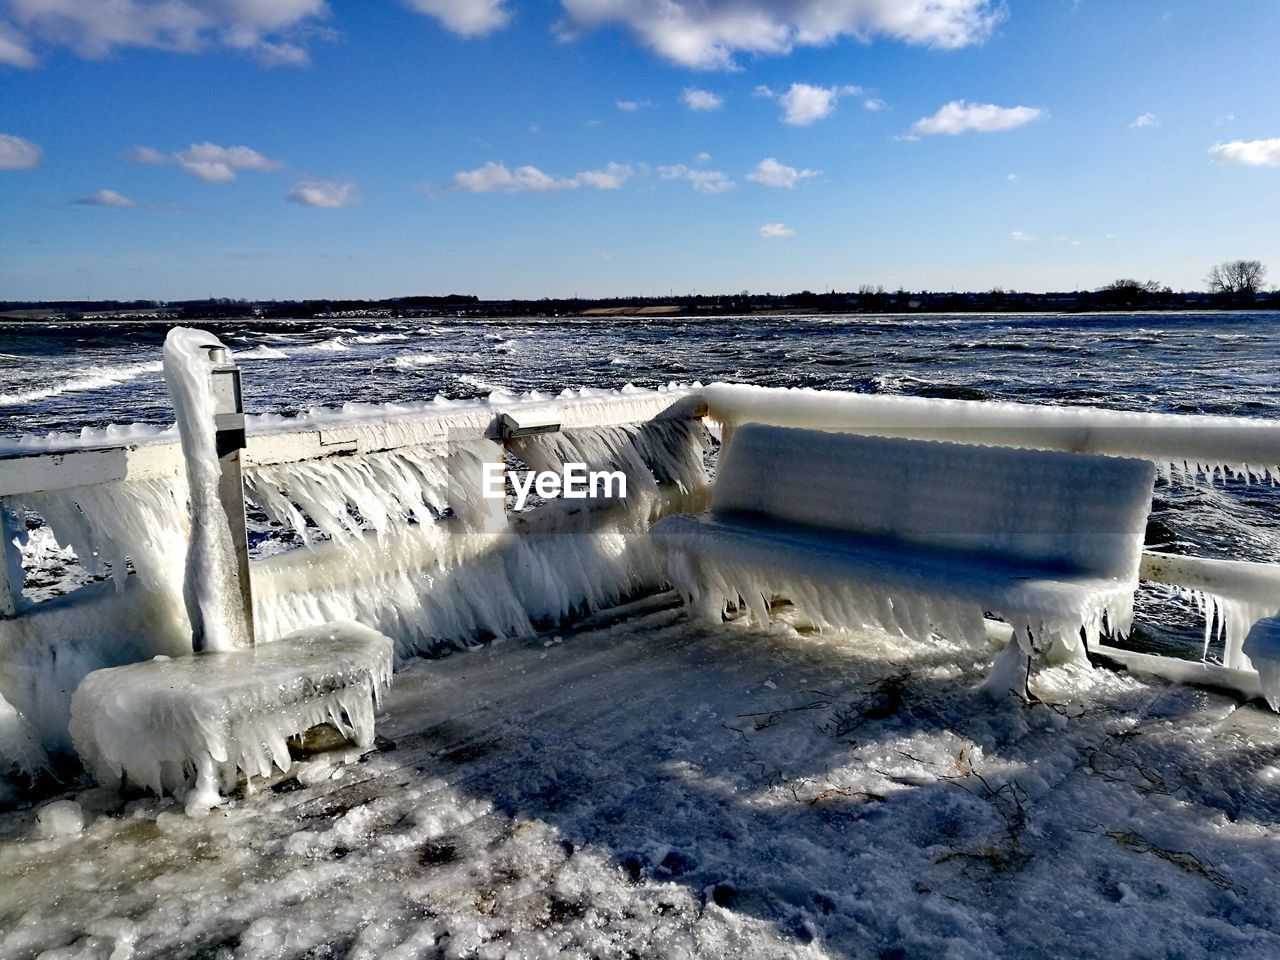 nature, water, cold temperature, beauty in nature, winter, sky, scenics, snow, day, outdoors, white color, tranquil scene, weather, cloud - sky, tranquility, frozen, ice, no people, motion, landscape, iceberg